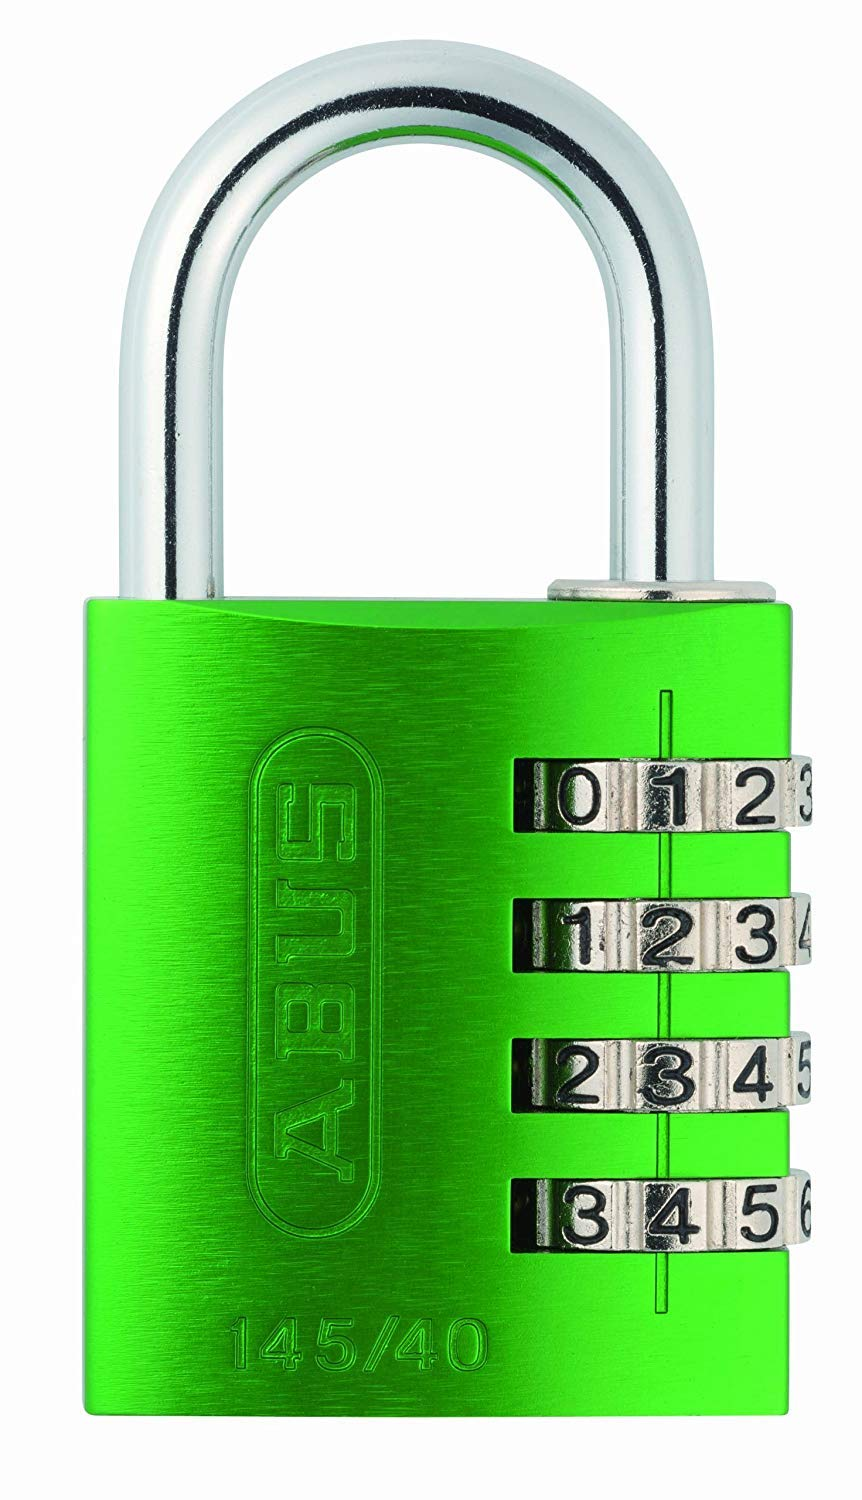 ABUS 145/40 Combination Padlock - Green ABU14540GRE-TB